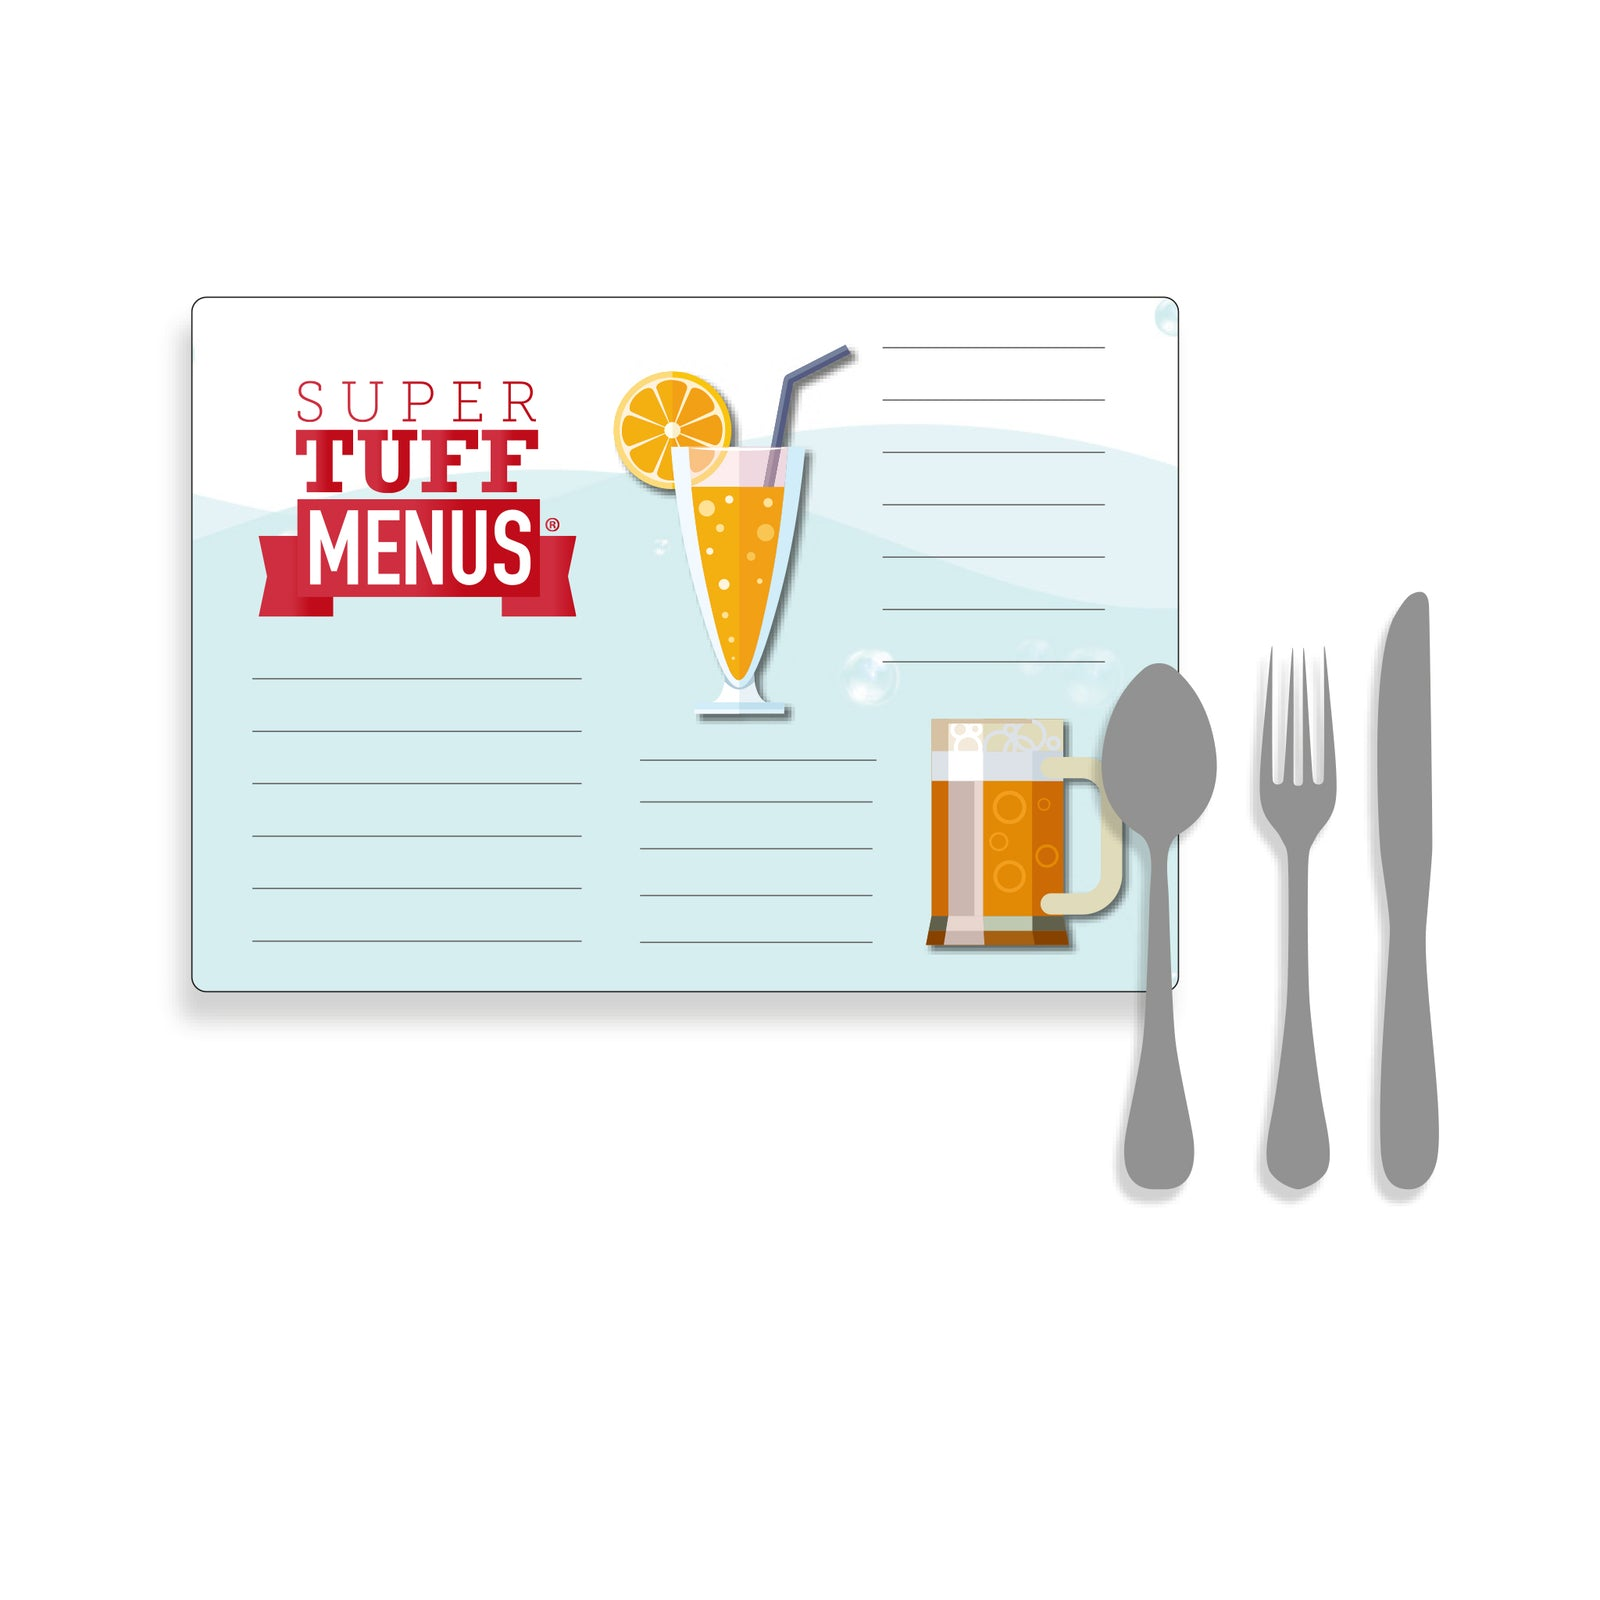 Landscape Legal sized illustration of a menu with cutlery to give a size context